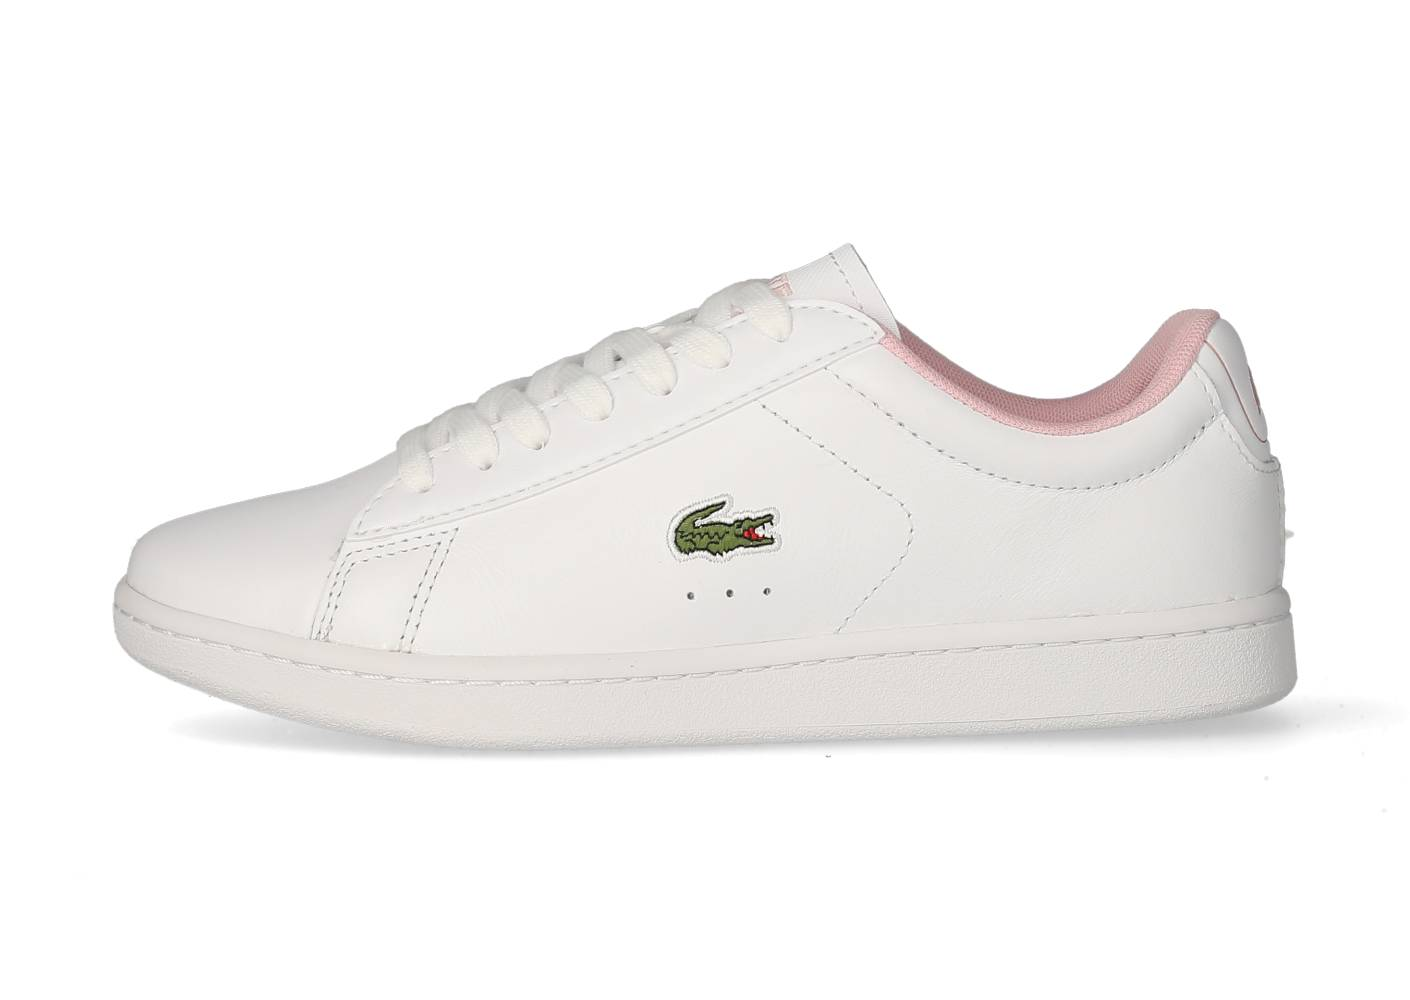 Lacoste Femme Carnaby Evo Blanche Et Rose Tennis 37